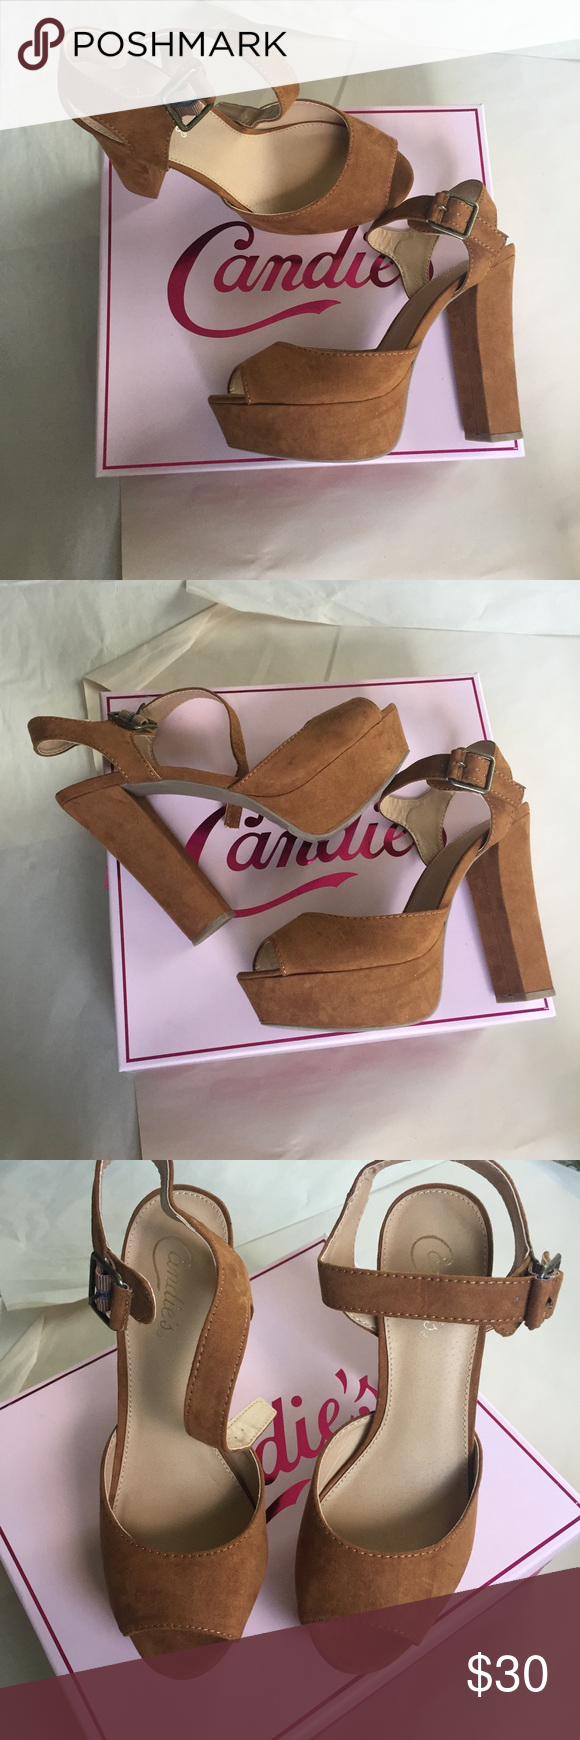 🎊🎊 1 HOUR SALE 🎊🎊 Super cute and trendy block heel partnered with a nice platform! Gorgeous chestnut color that will go with any outfit! 🌟same or next day shipping on all orders (except weekends)🌟make me an offer!🌟 Candie's Shoes Heels